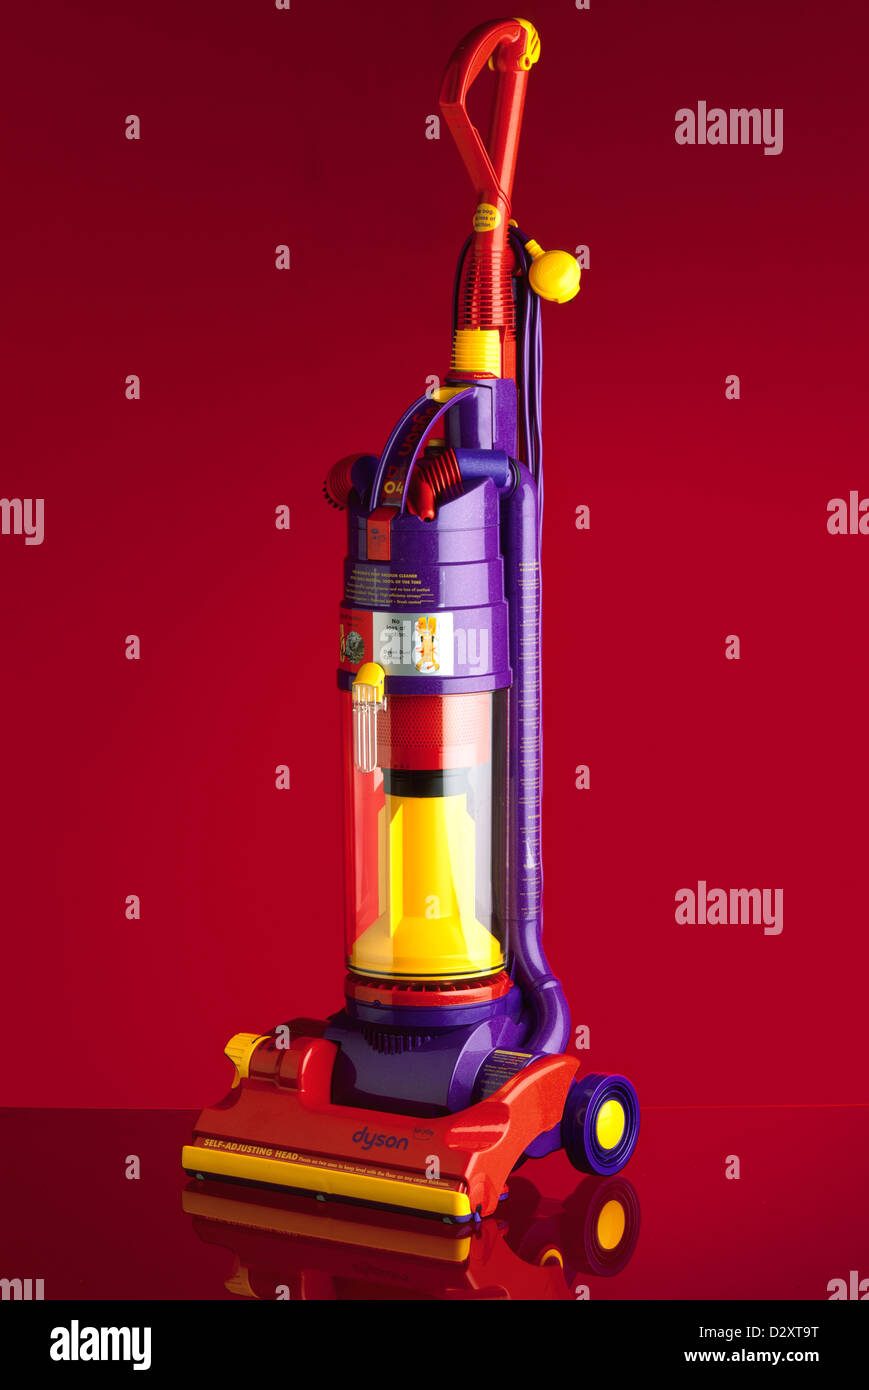 dyson dc04 de stijl upright vacuum cleaner on glass red background stock photo 53450260 alamy